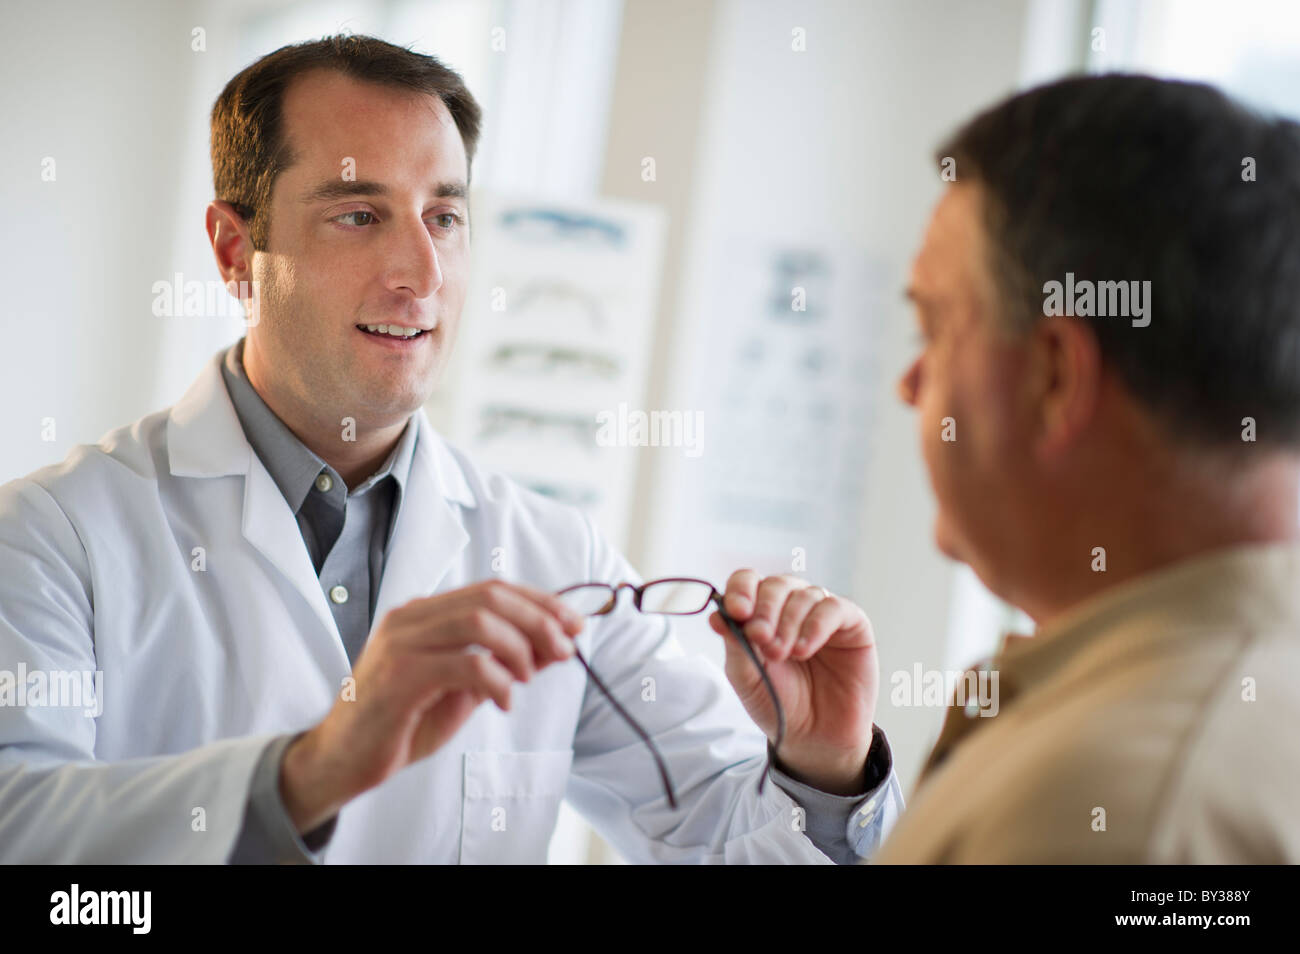 USA, New Jersey, Jersey City, Optician showing man glasses in shop - Stock Image